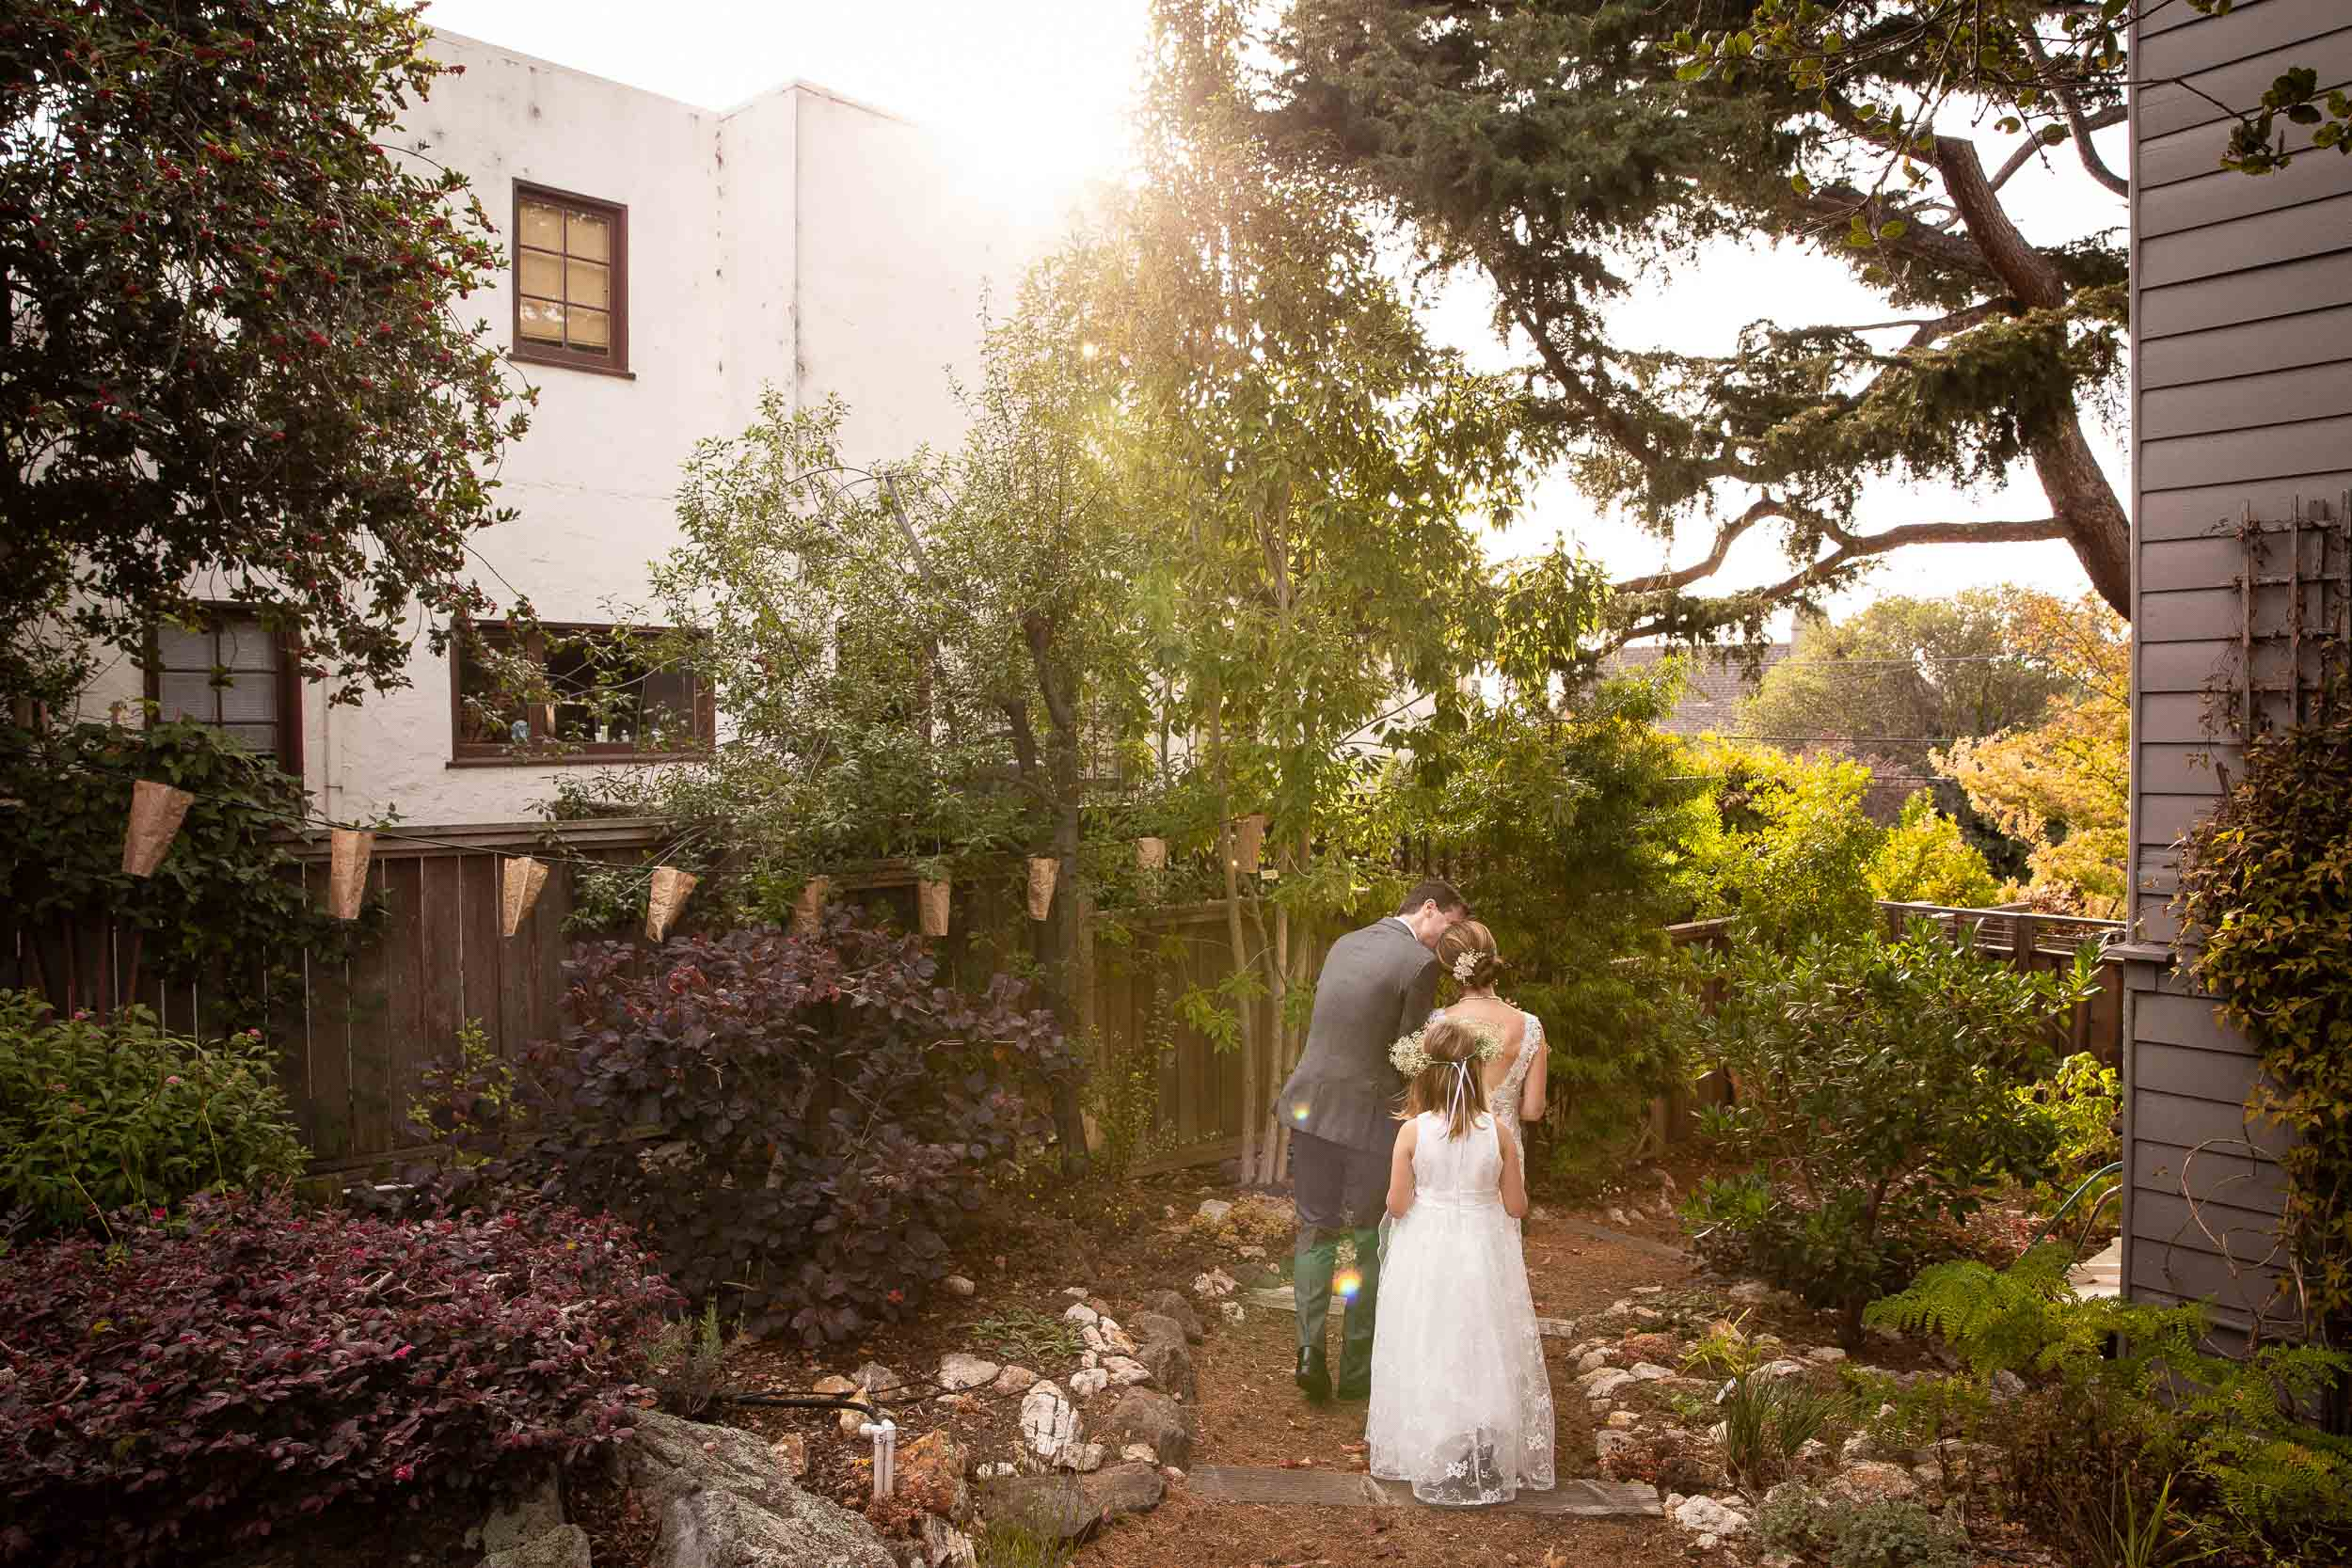 Small Berkeley Wedding in Backyard